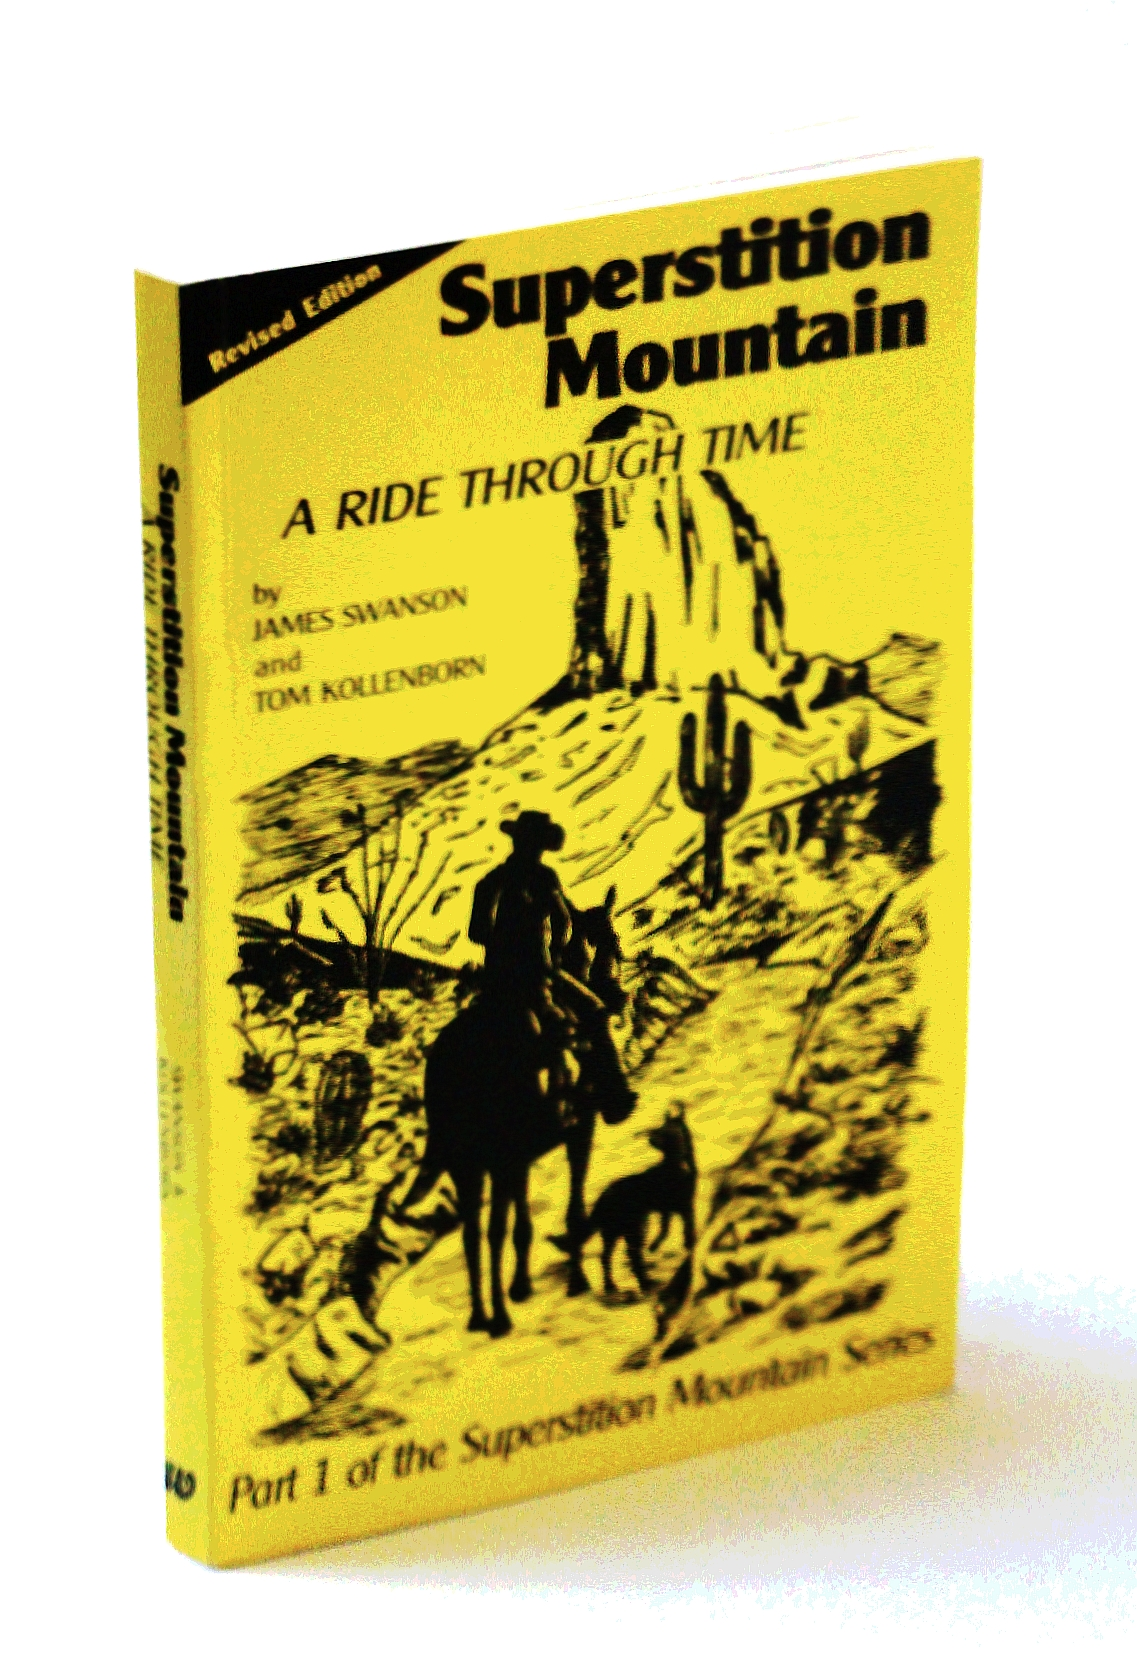 Superstition Mountain: A Ride Through Time (The Superstition Mountain Series, Part 1)